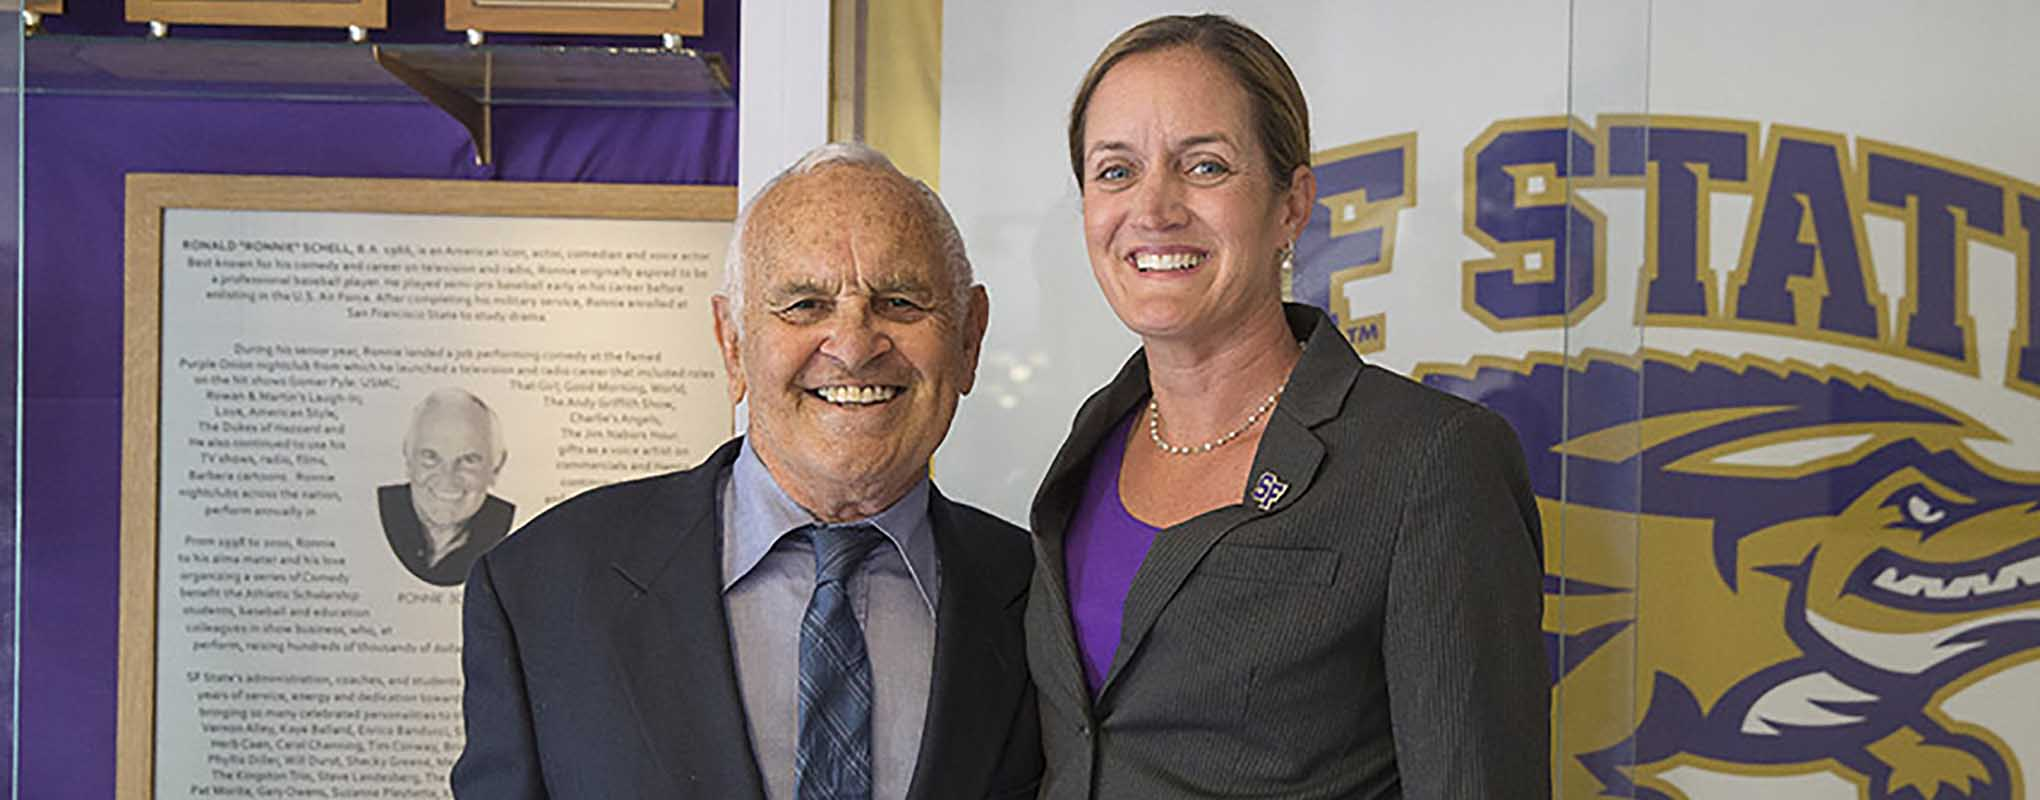 Actor and comedian Ronnie Schell and San Francisco State Athletics Director Stephanie Shrieve-Hawkins